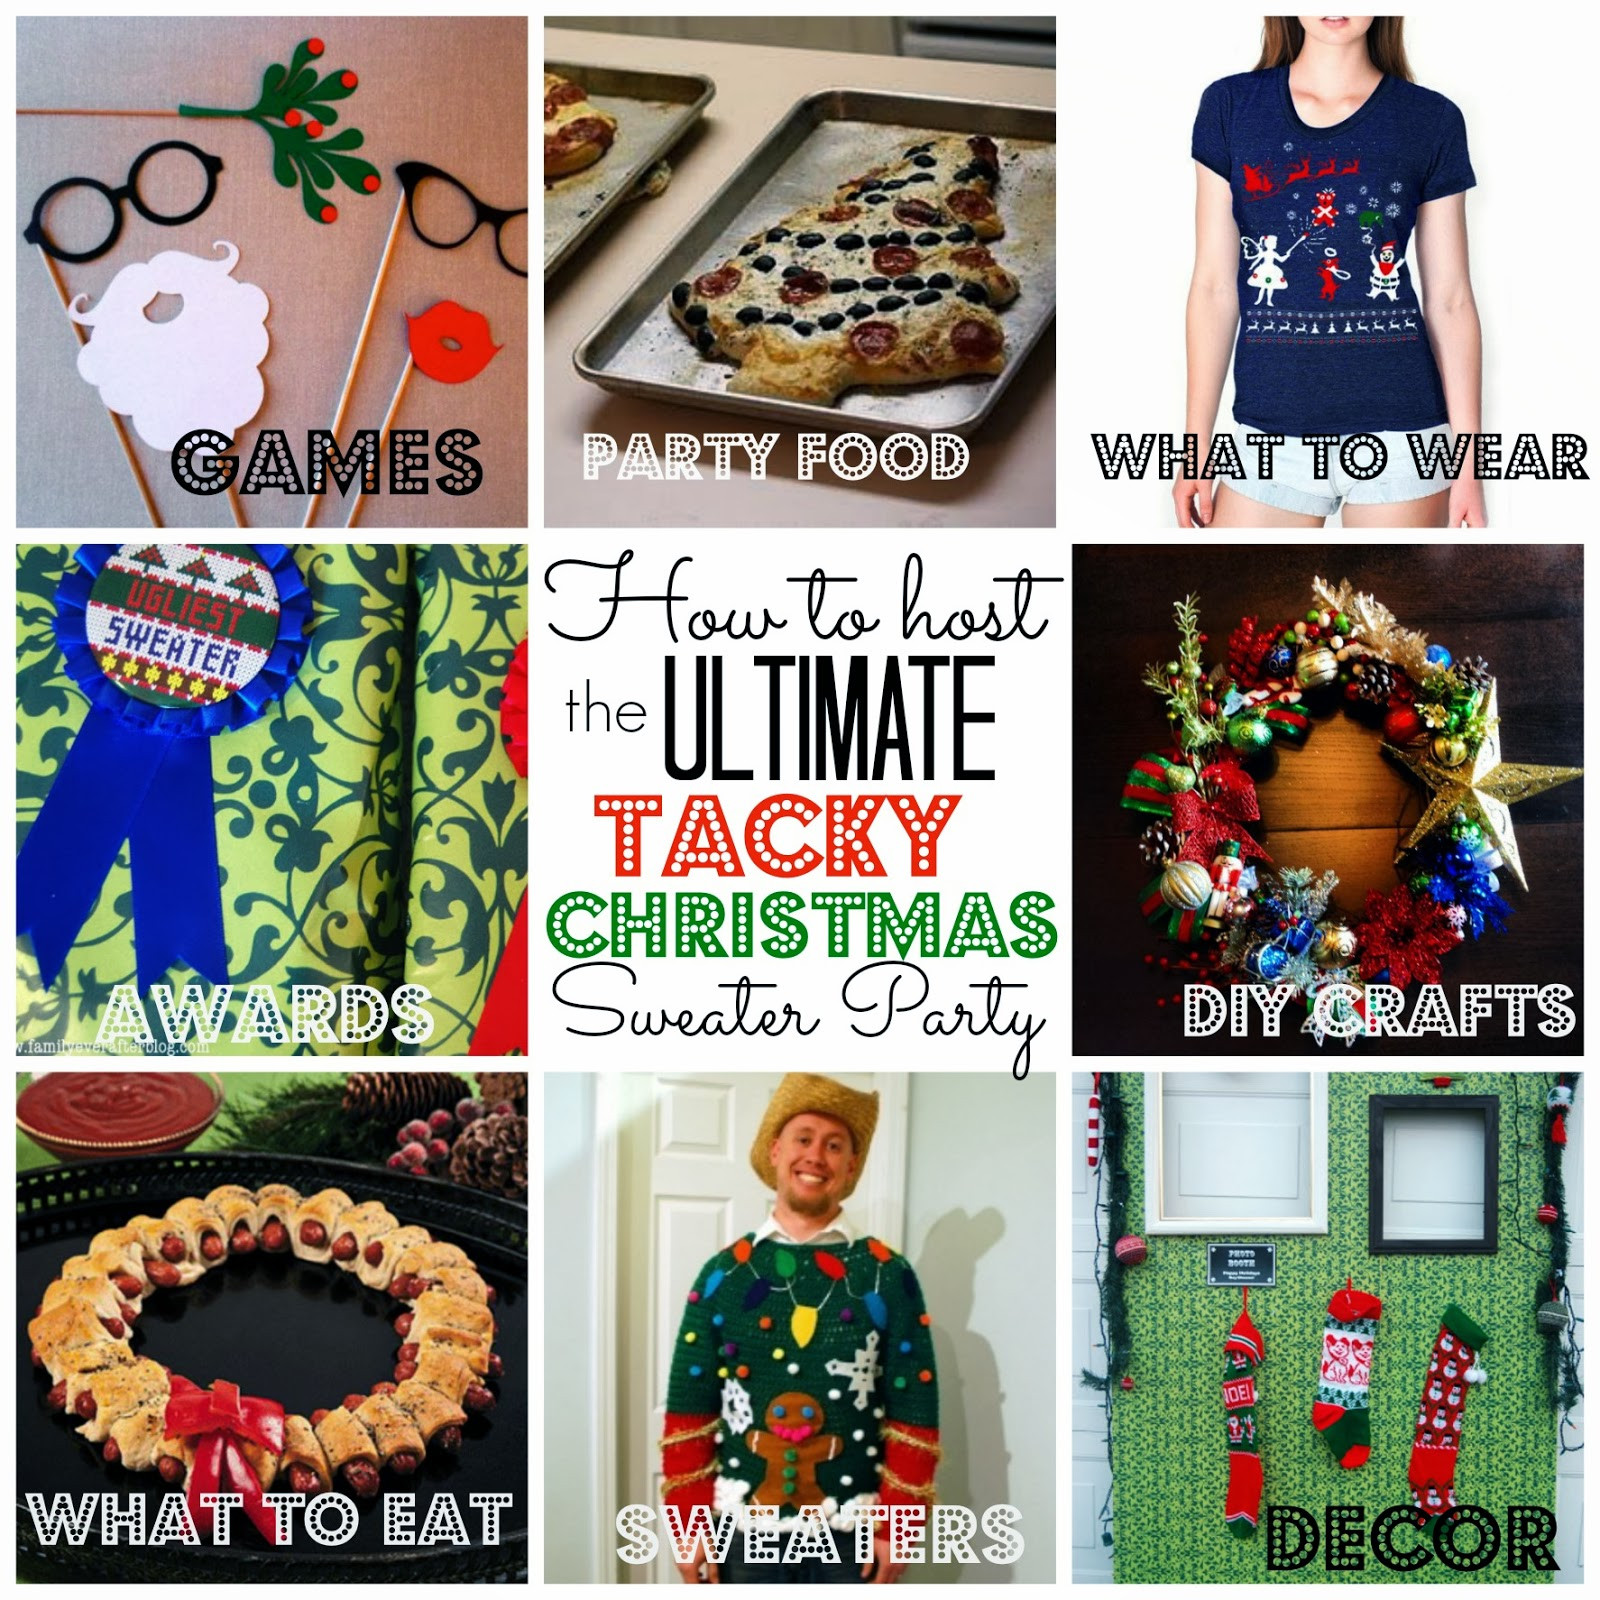 Christmas Sweater Party Ideas  Crafty Texas Girls Party Planning Tacky Christmas Sweater